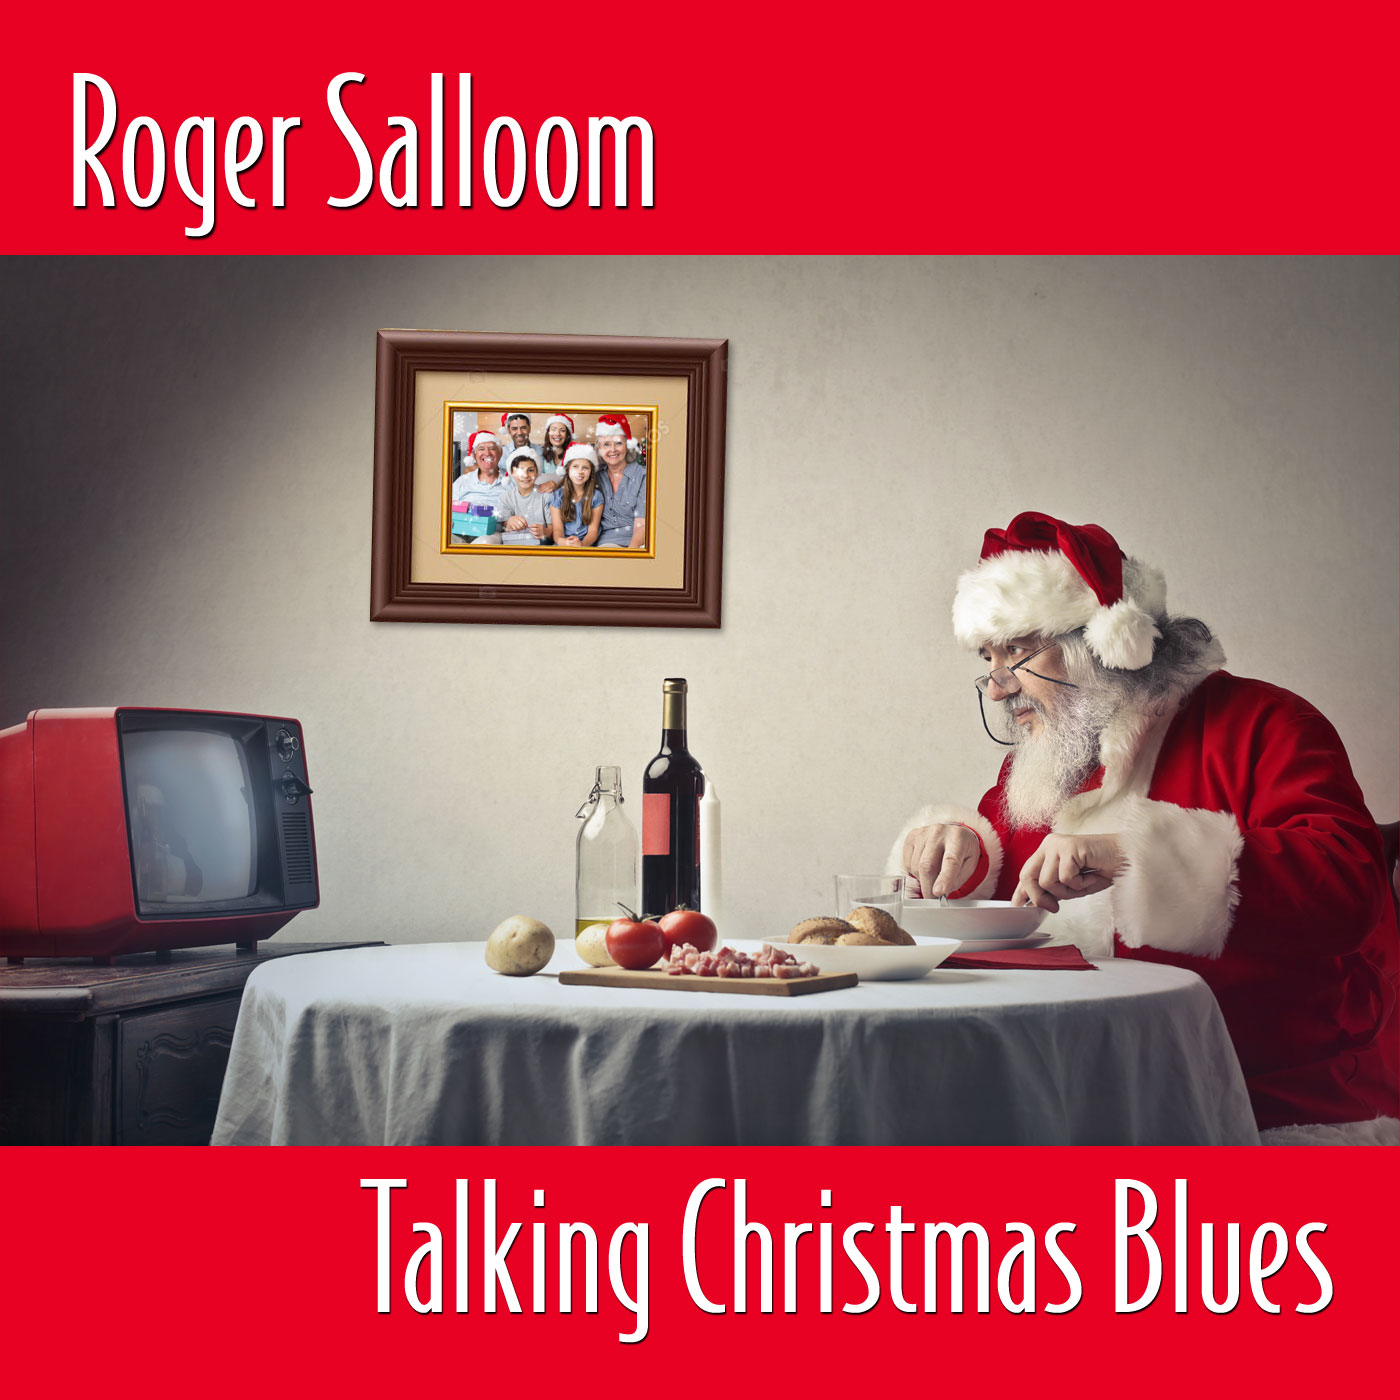 Talkin Christmas Blues -Roger Salloom